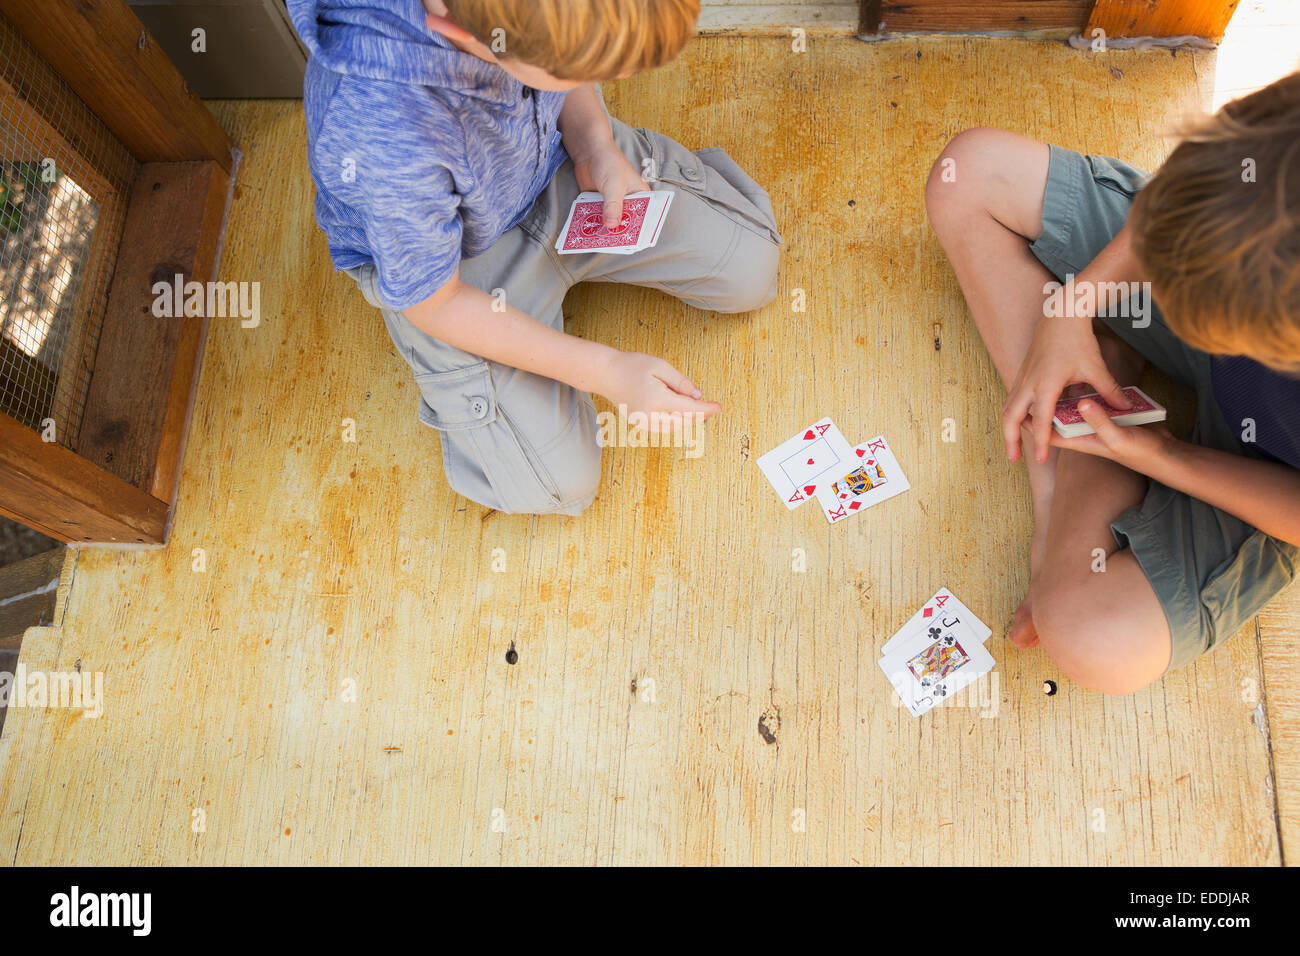 Two brothers playing cards. - Stock Image